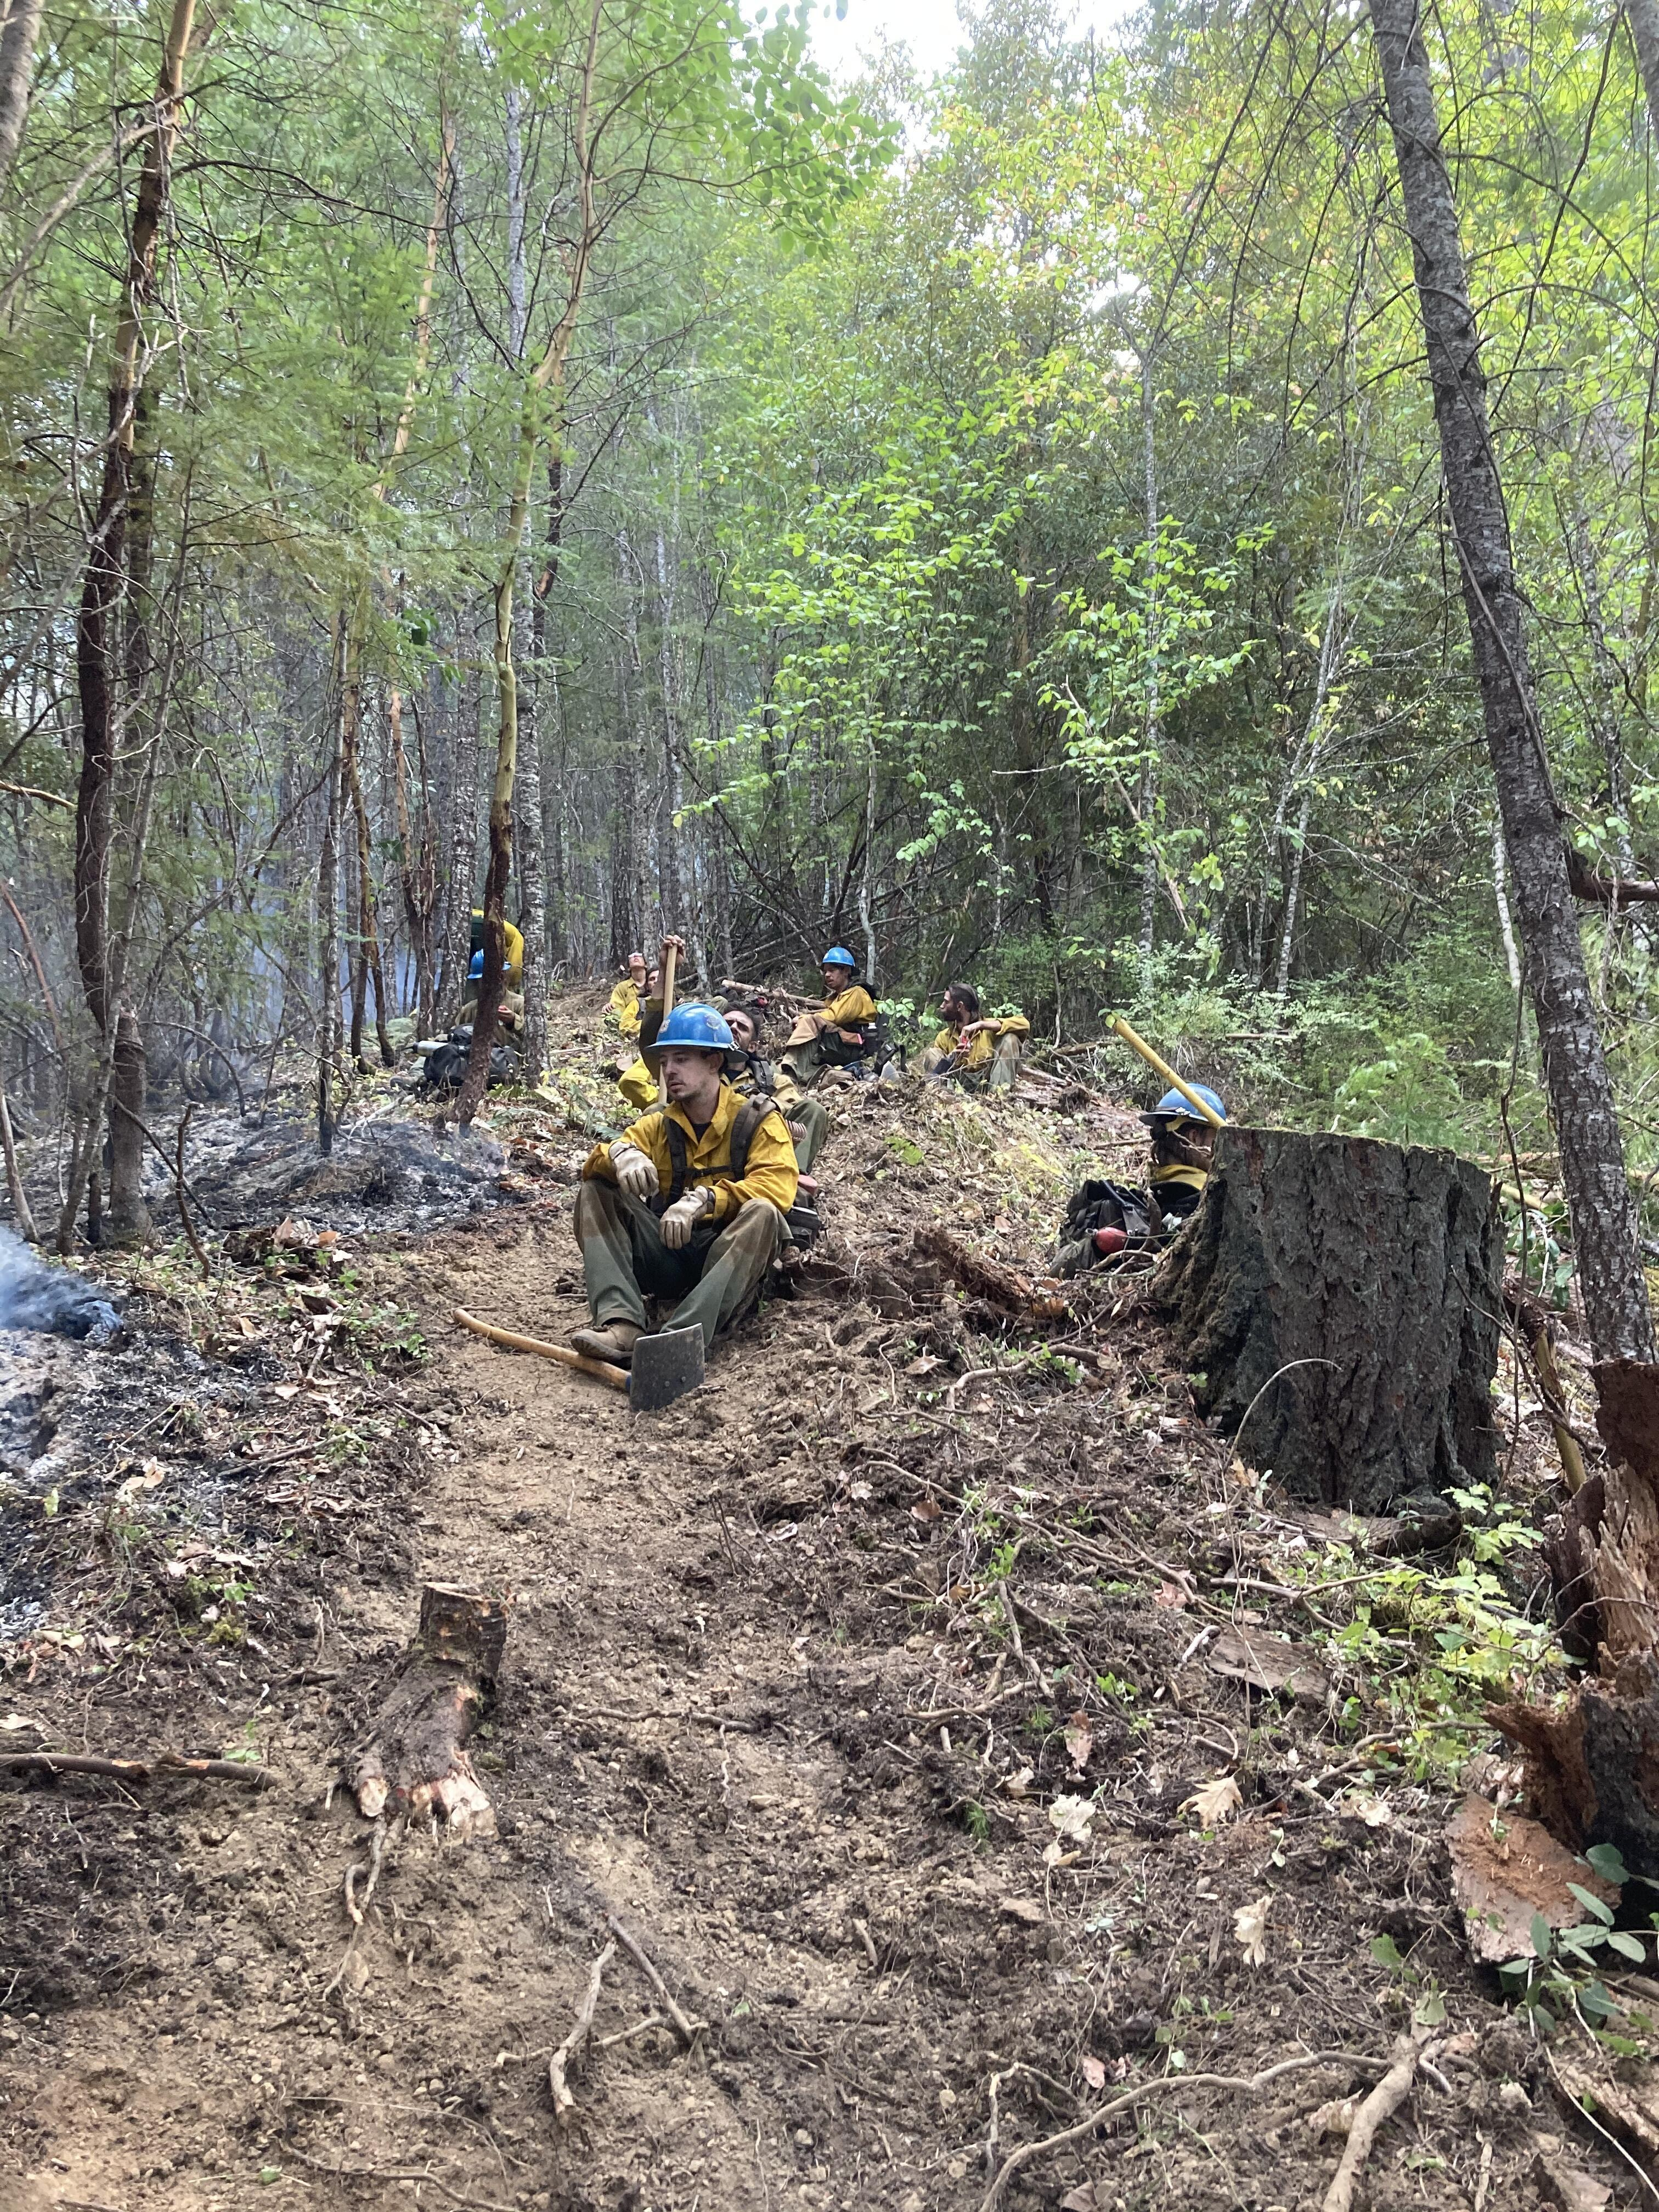 Carson Hotshots rest on a trail after fighting a wildfire